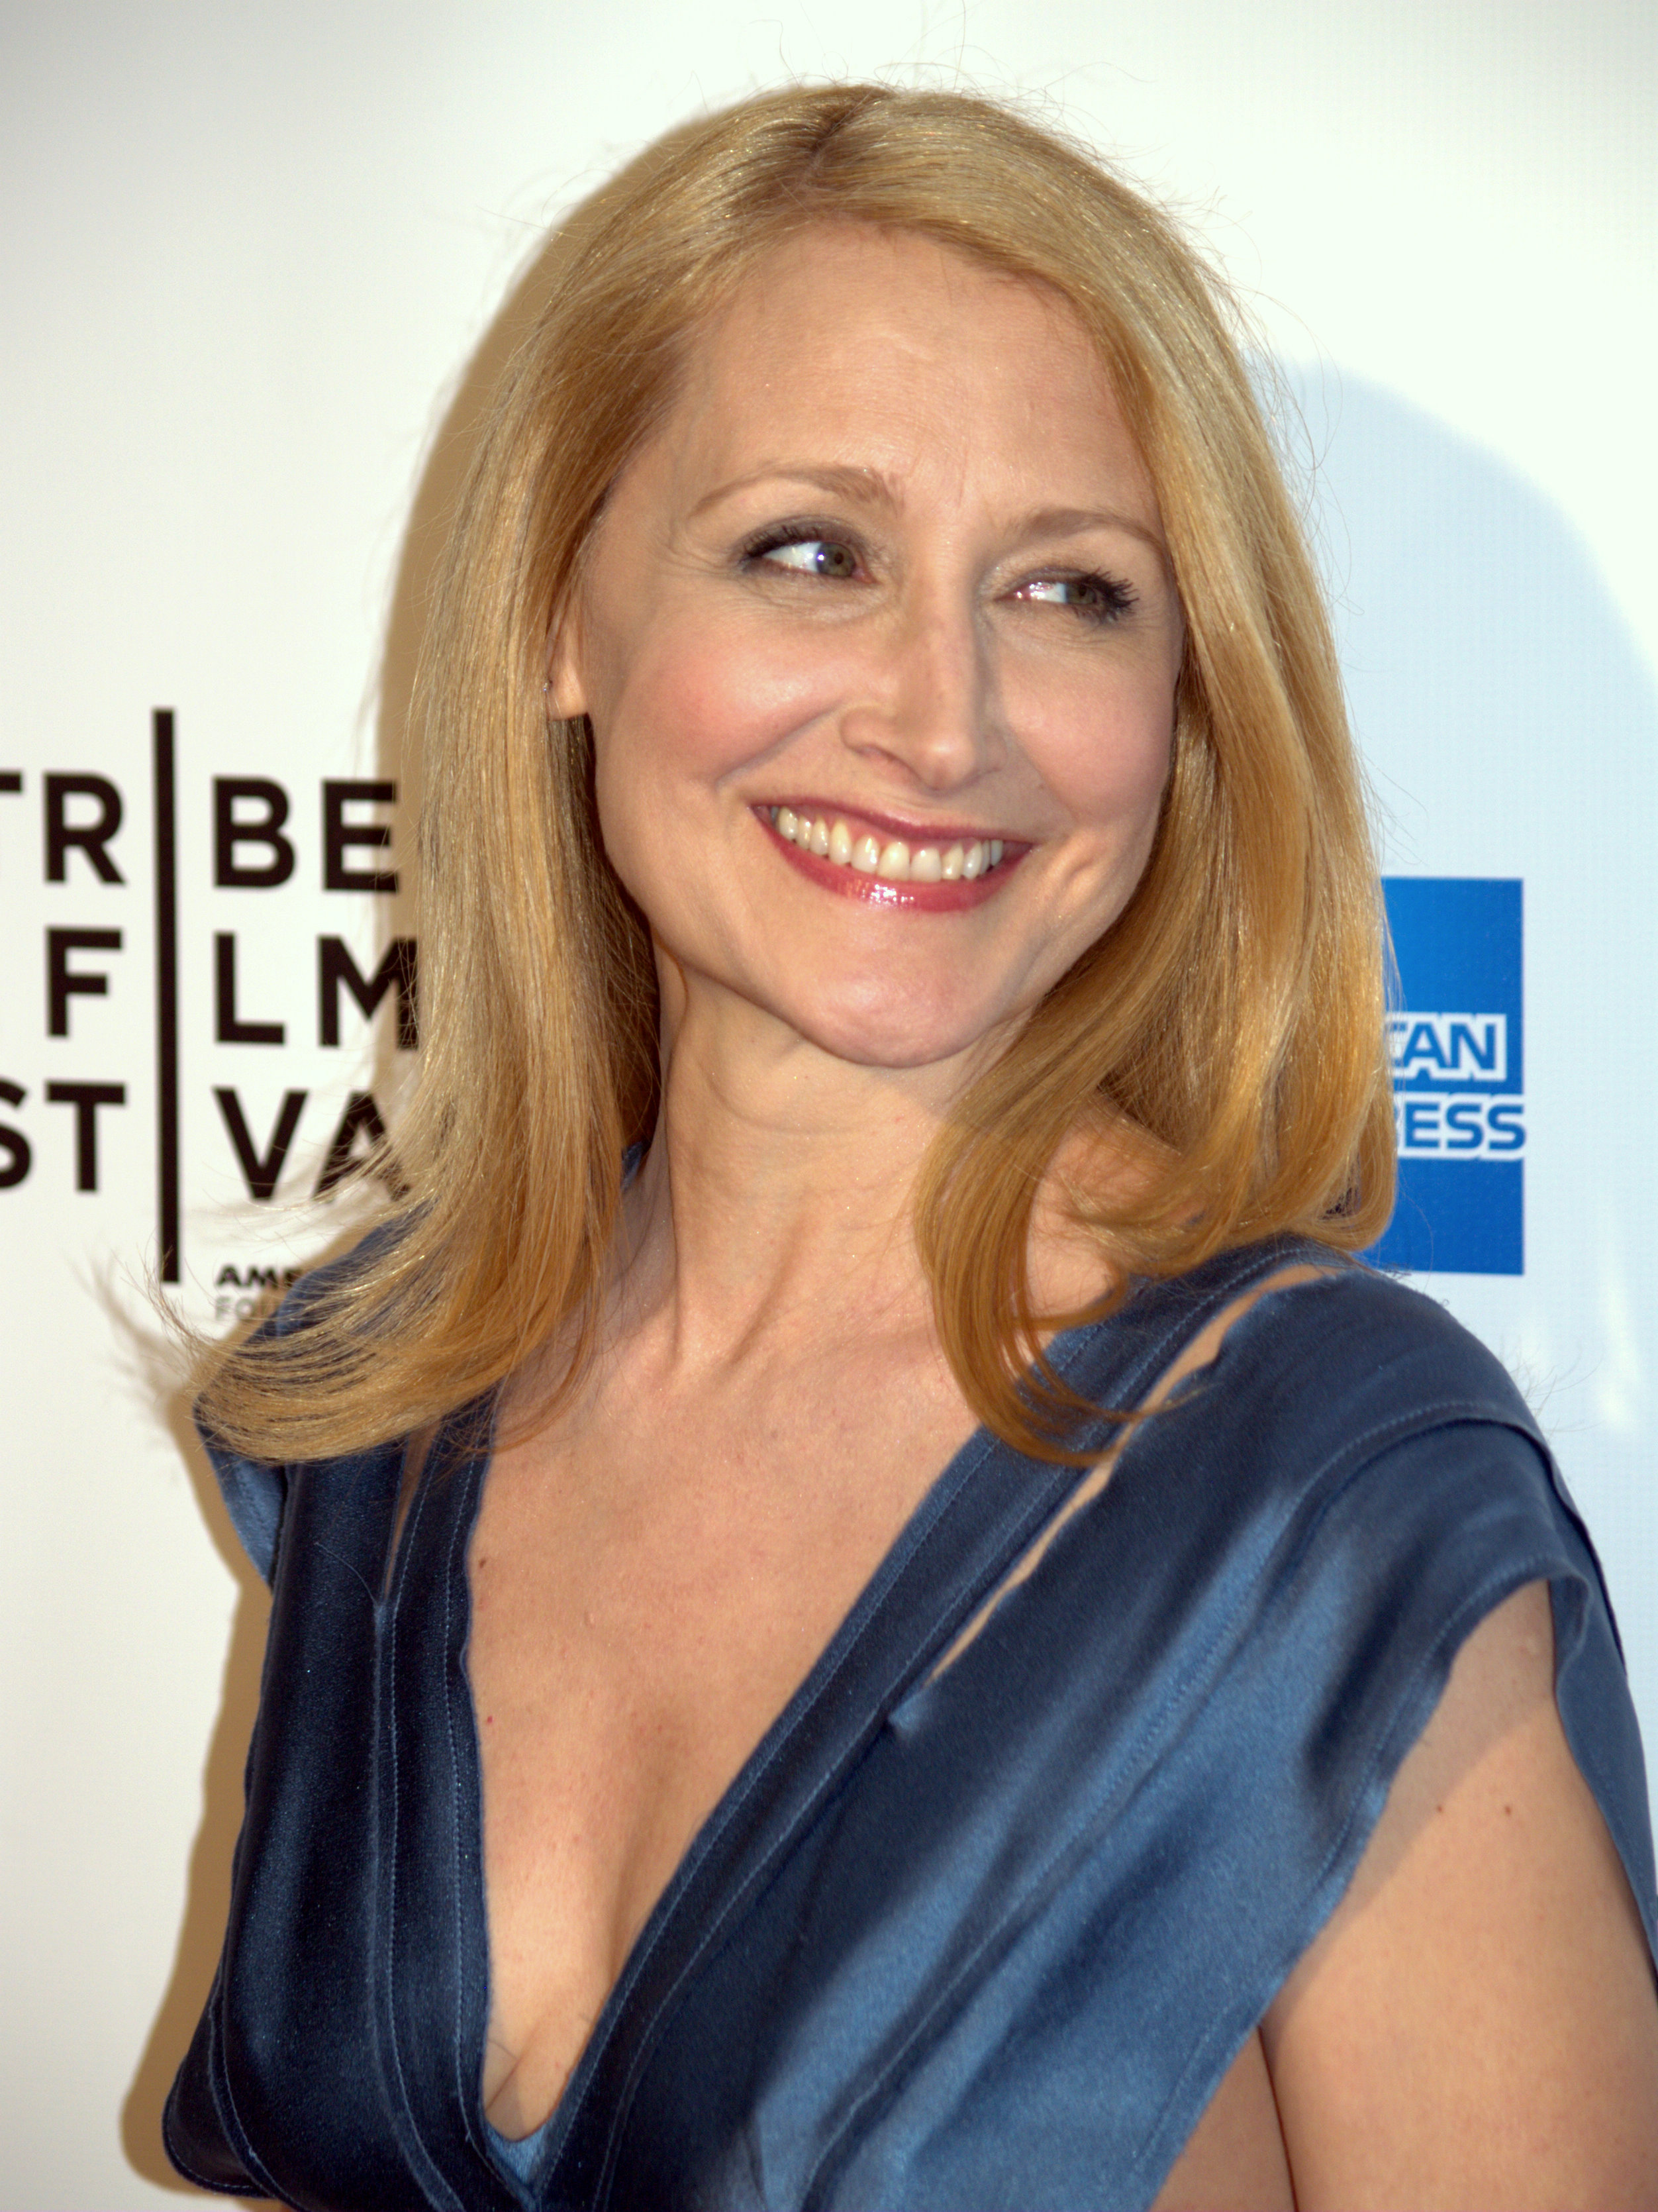 Patricia Clarkson earned a  million dollar salary, leaving the net worth at 3 million in 2017